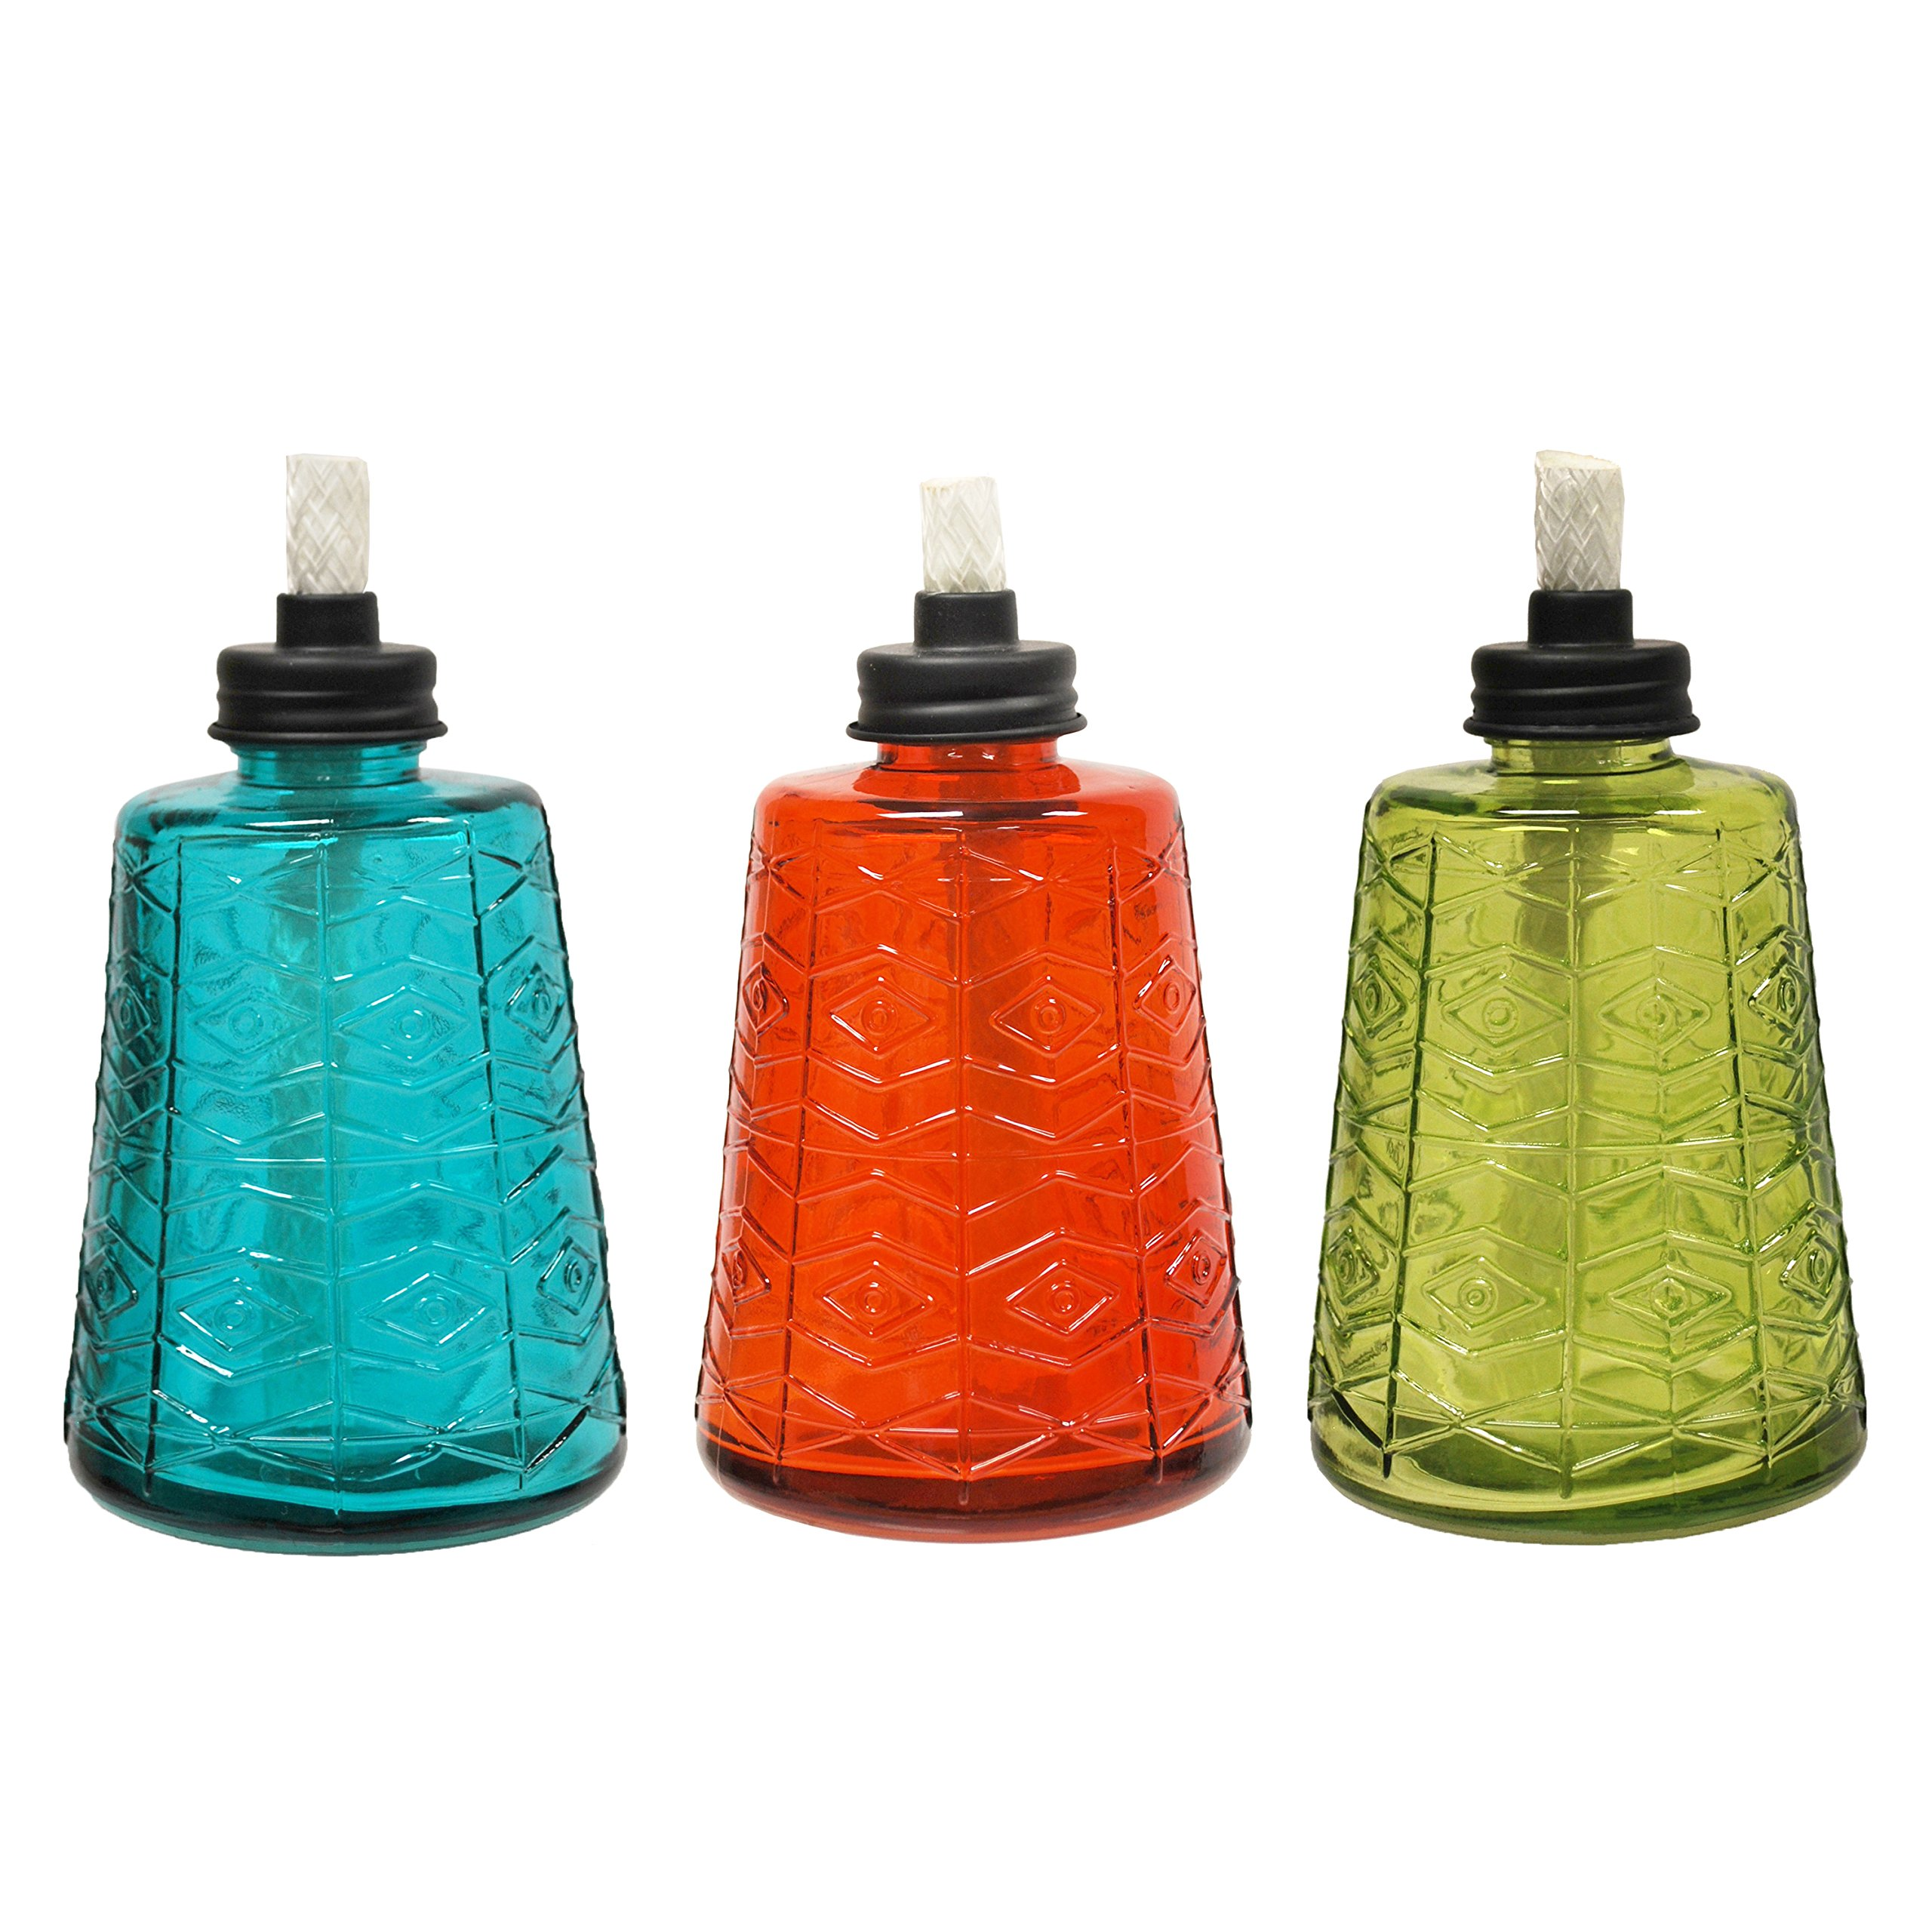 TIKI 6-Inch Molded Glass Table Torch, Red, Green & Blue (Set of 3) by Tiki (Image #6)